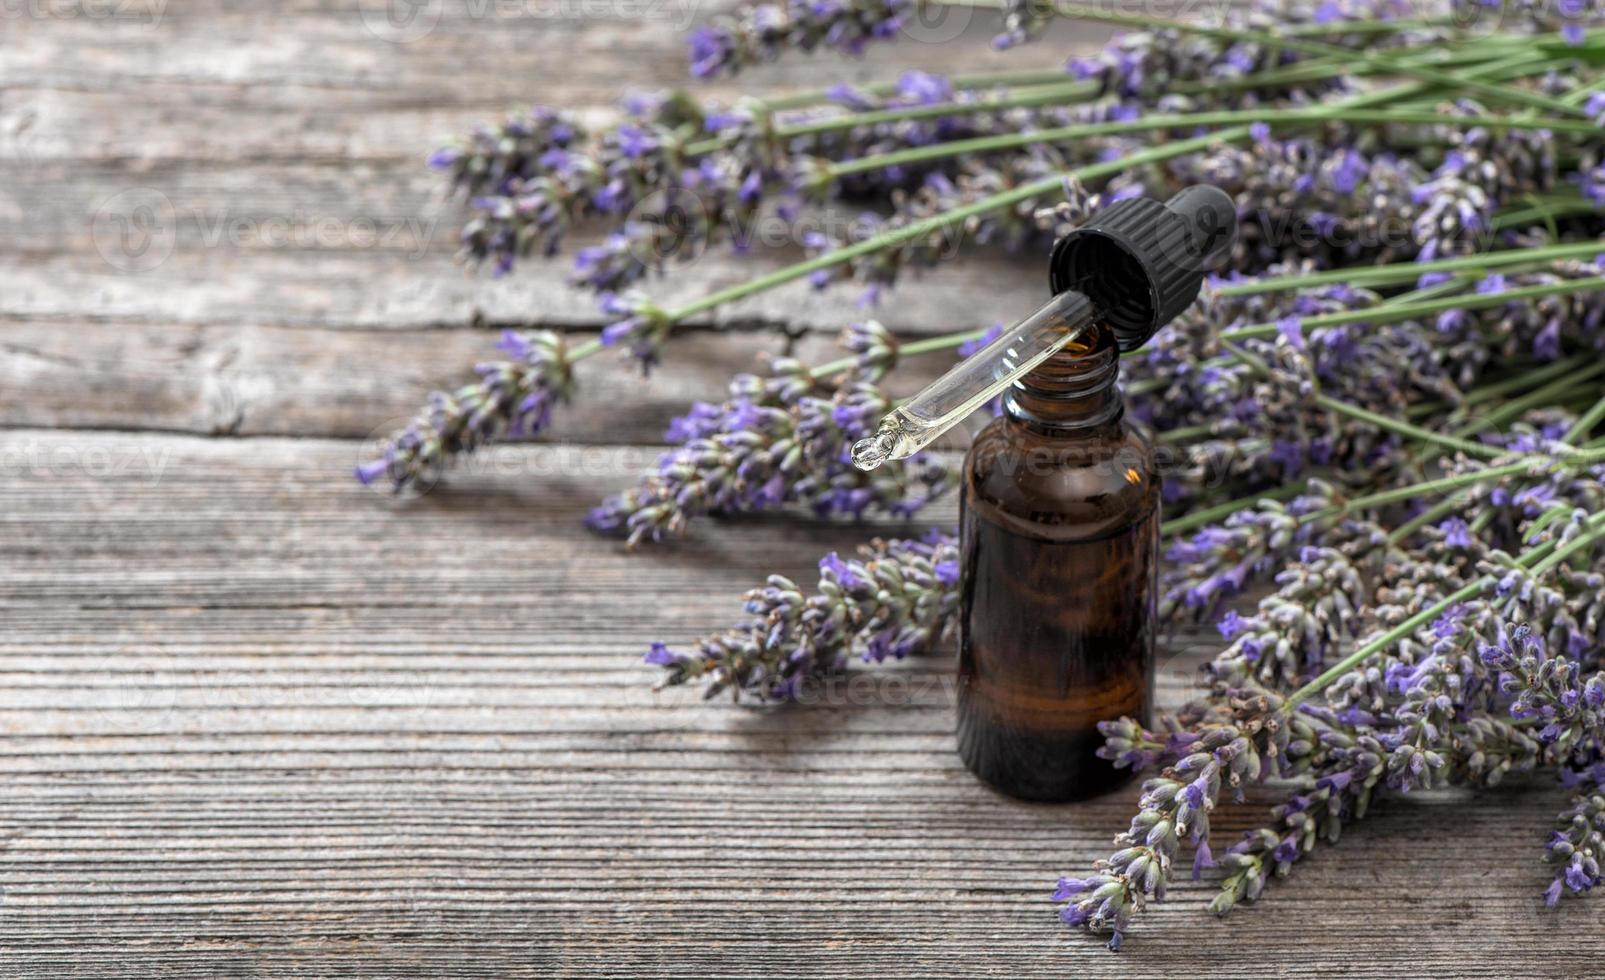 Herbal oil and lavender flowers bouquet on wooden background photo